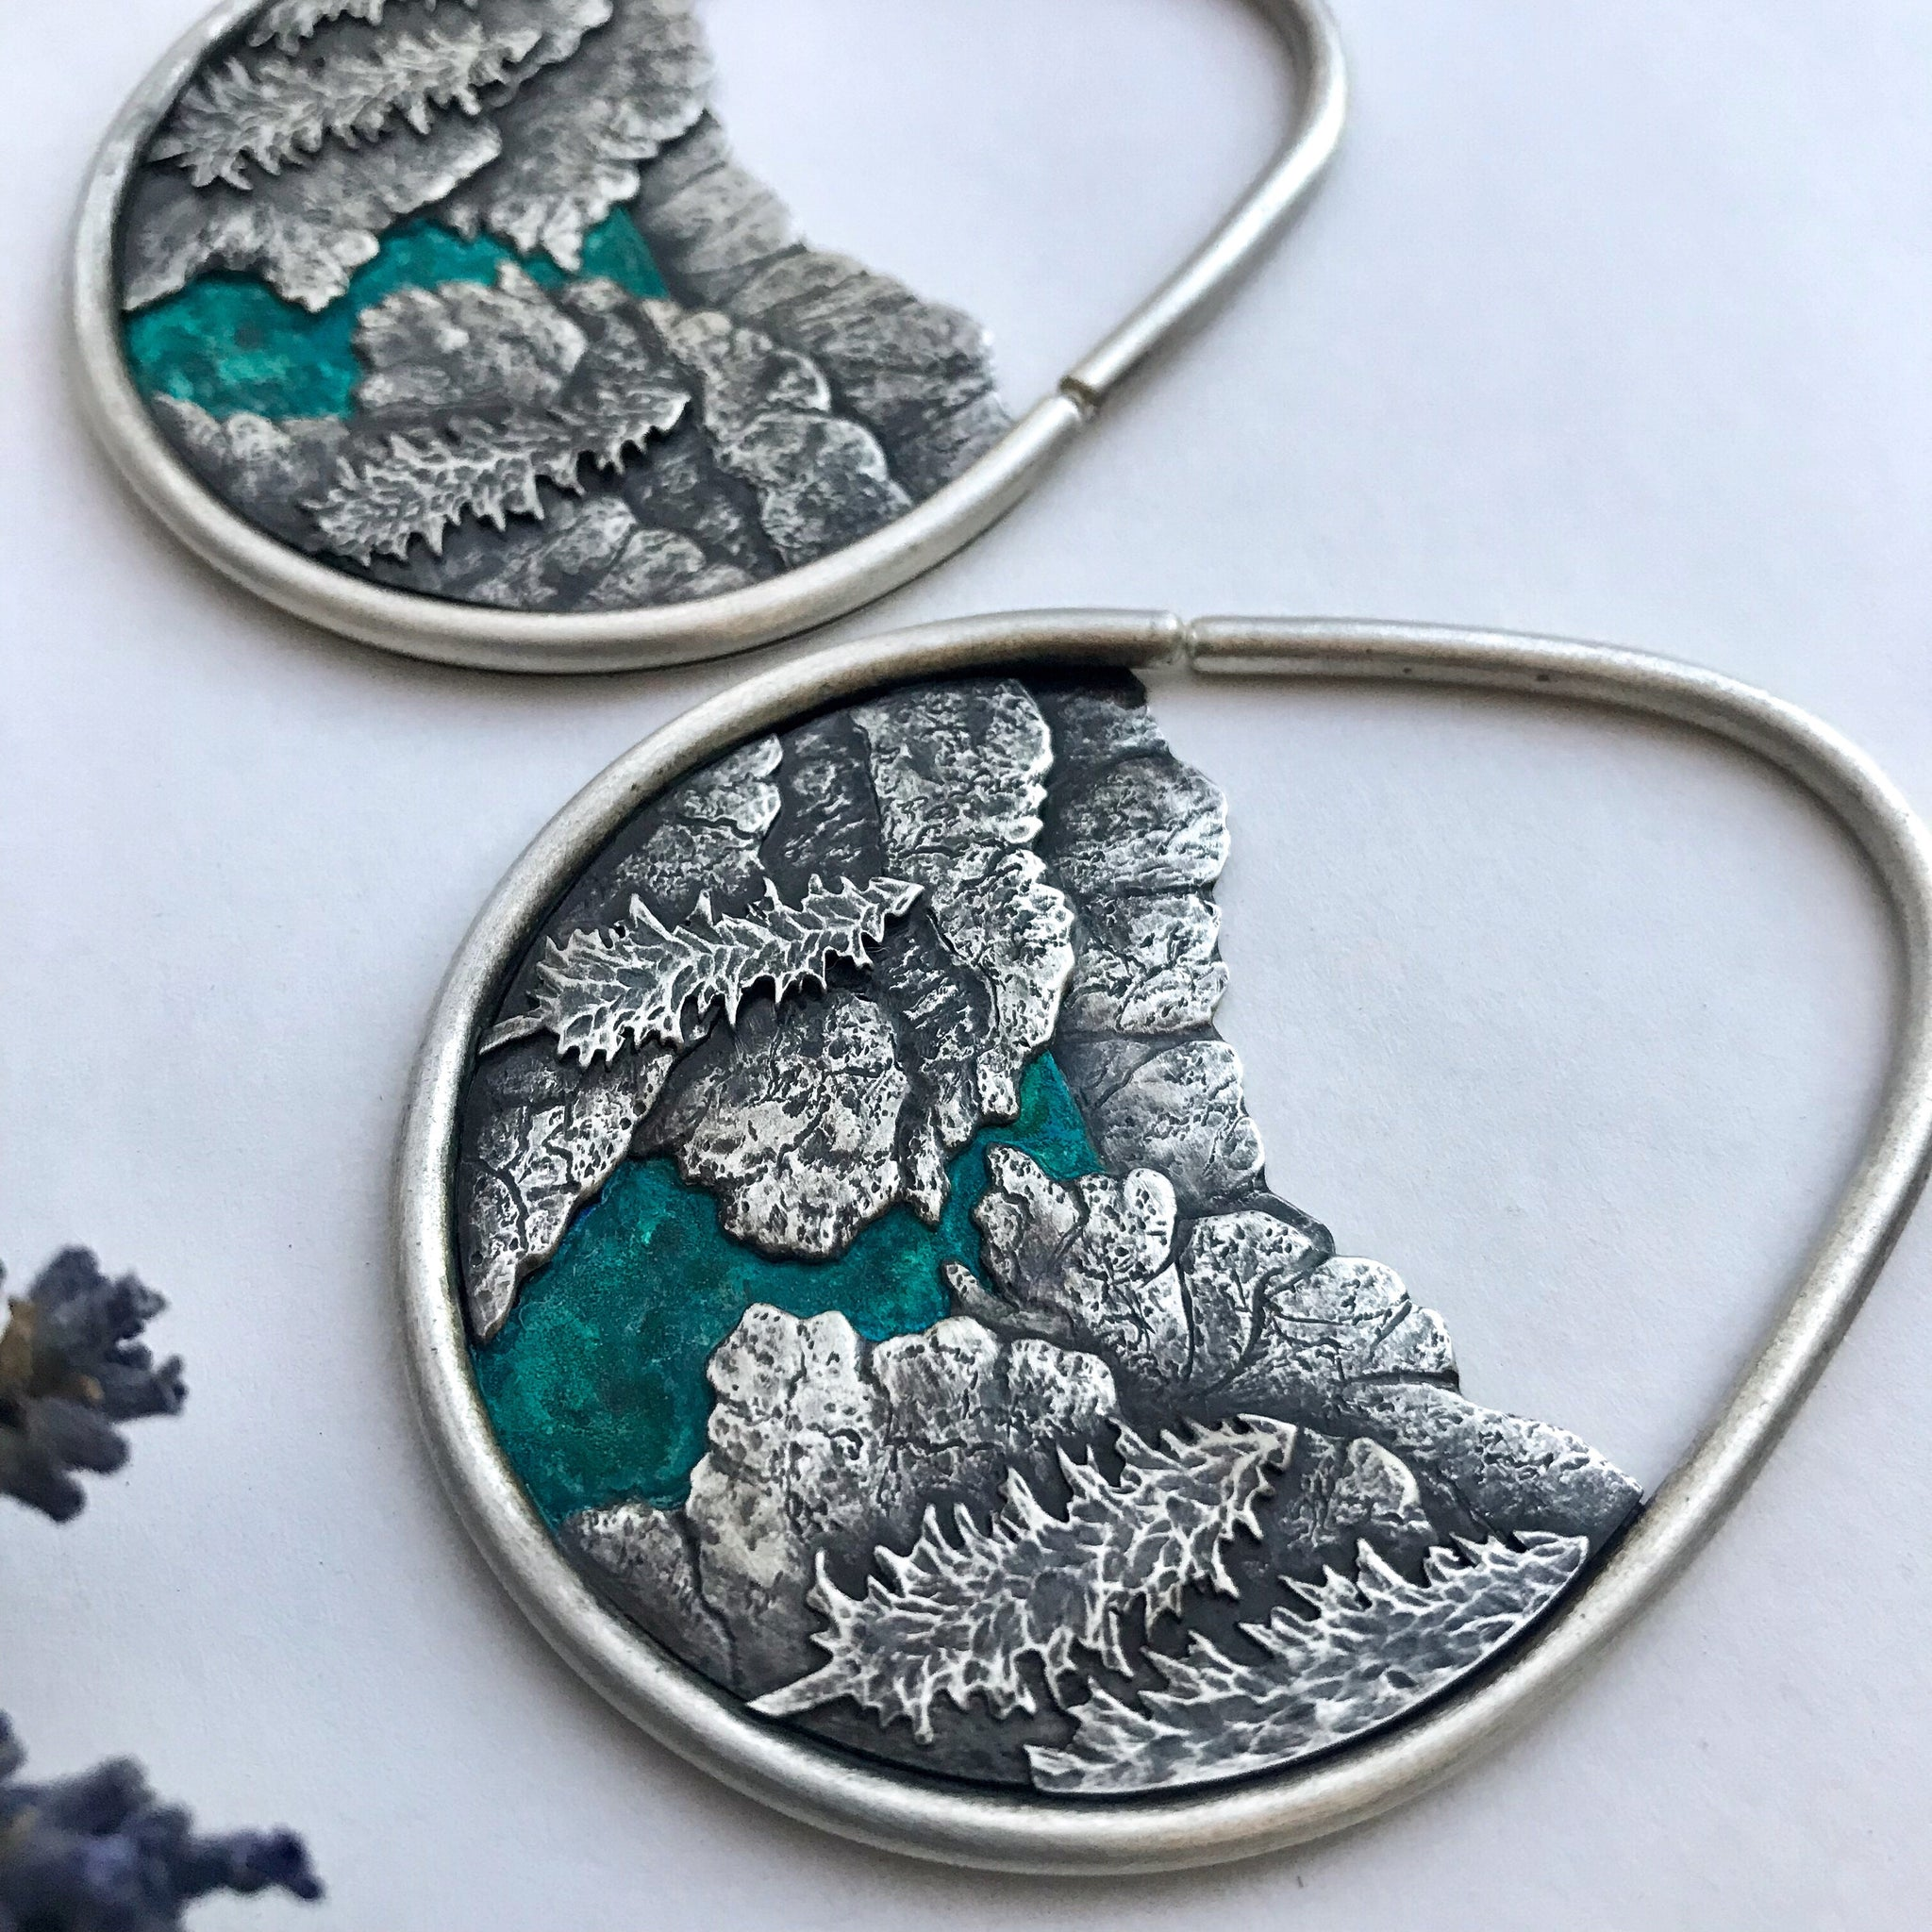 10g SALE Silver Fjord Landscape Earrings For Stretched Ears